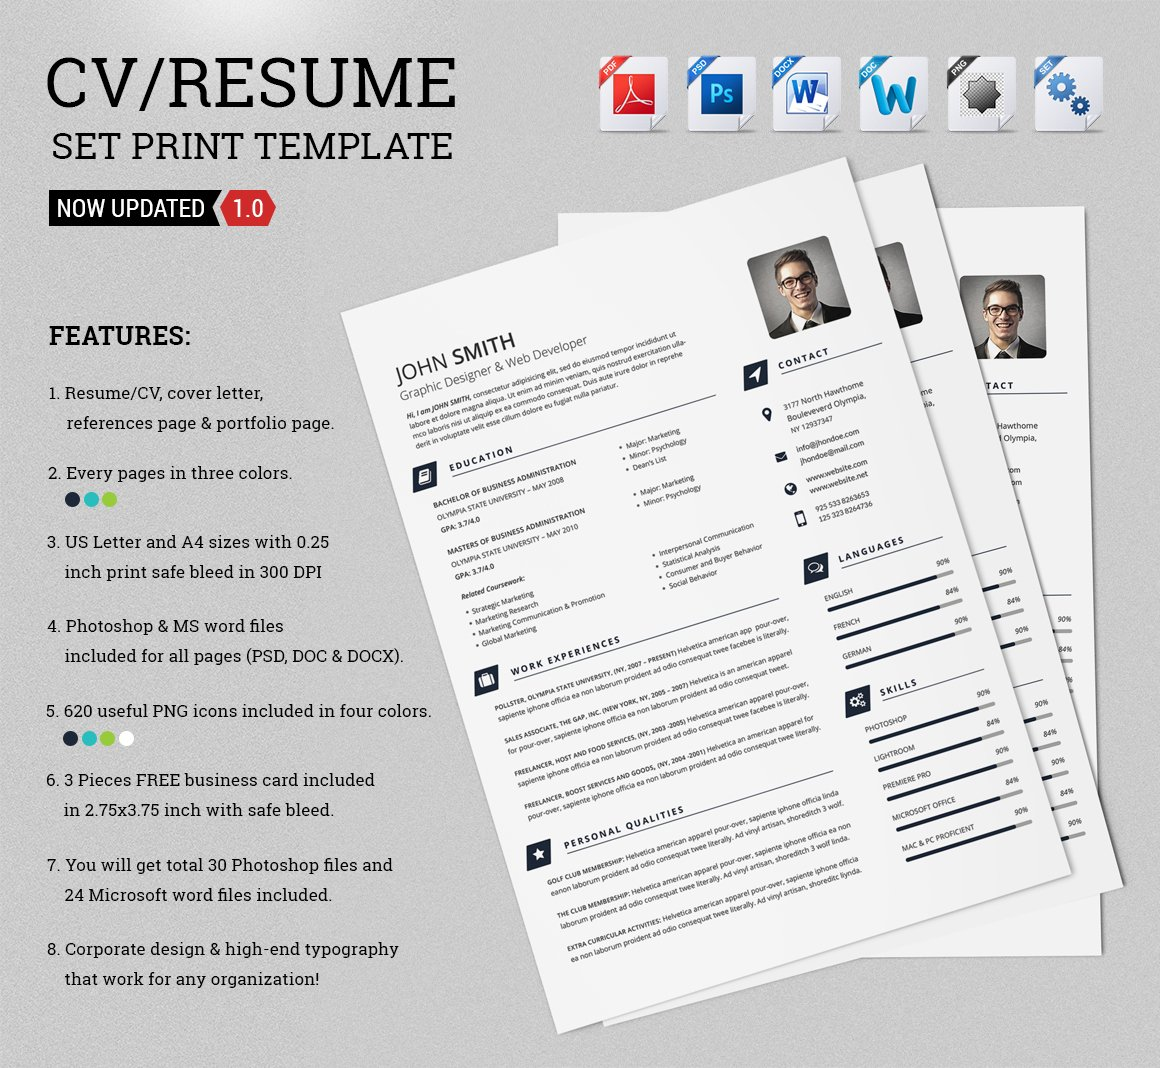 cvresume set print template resume templates creative market